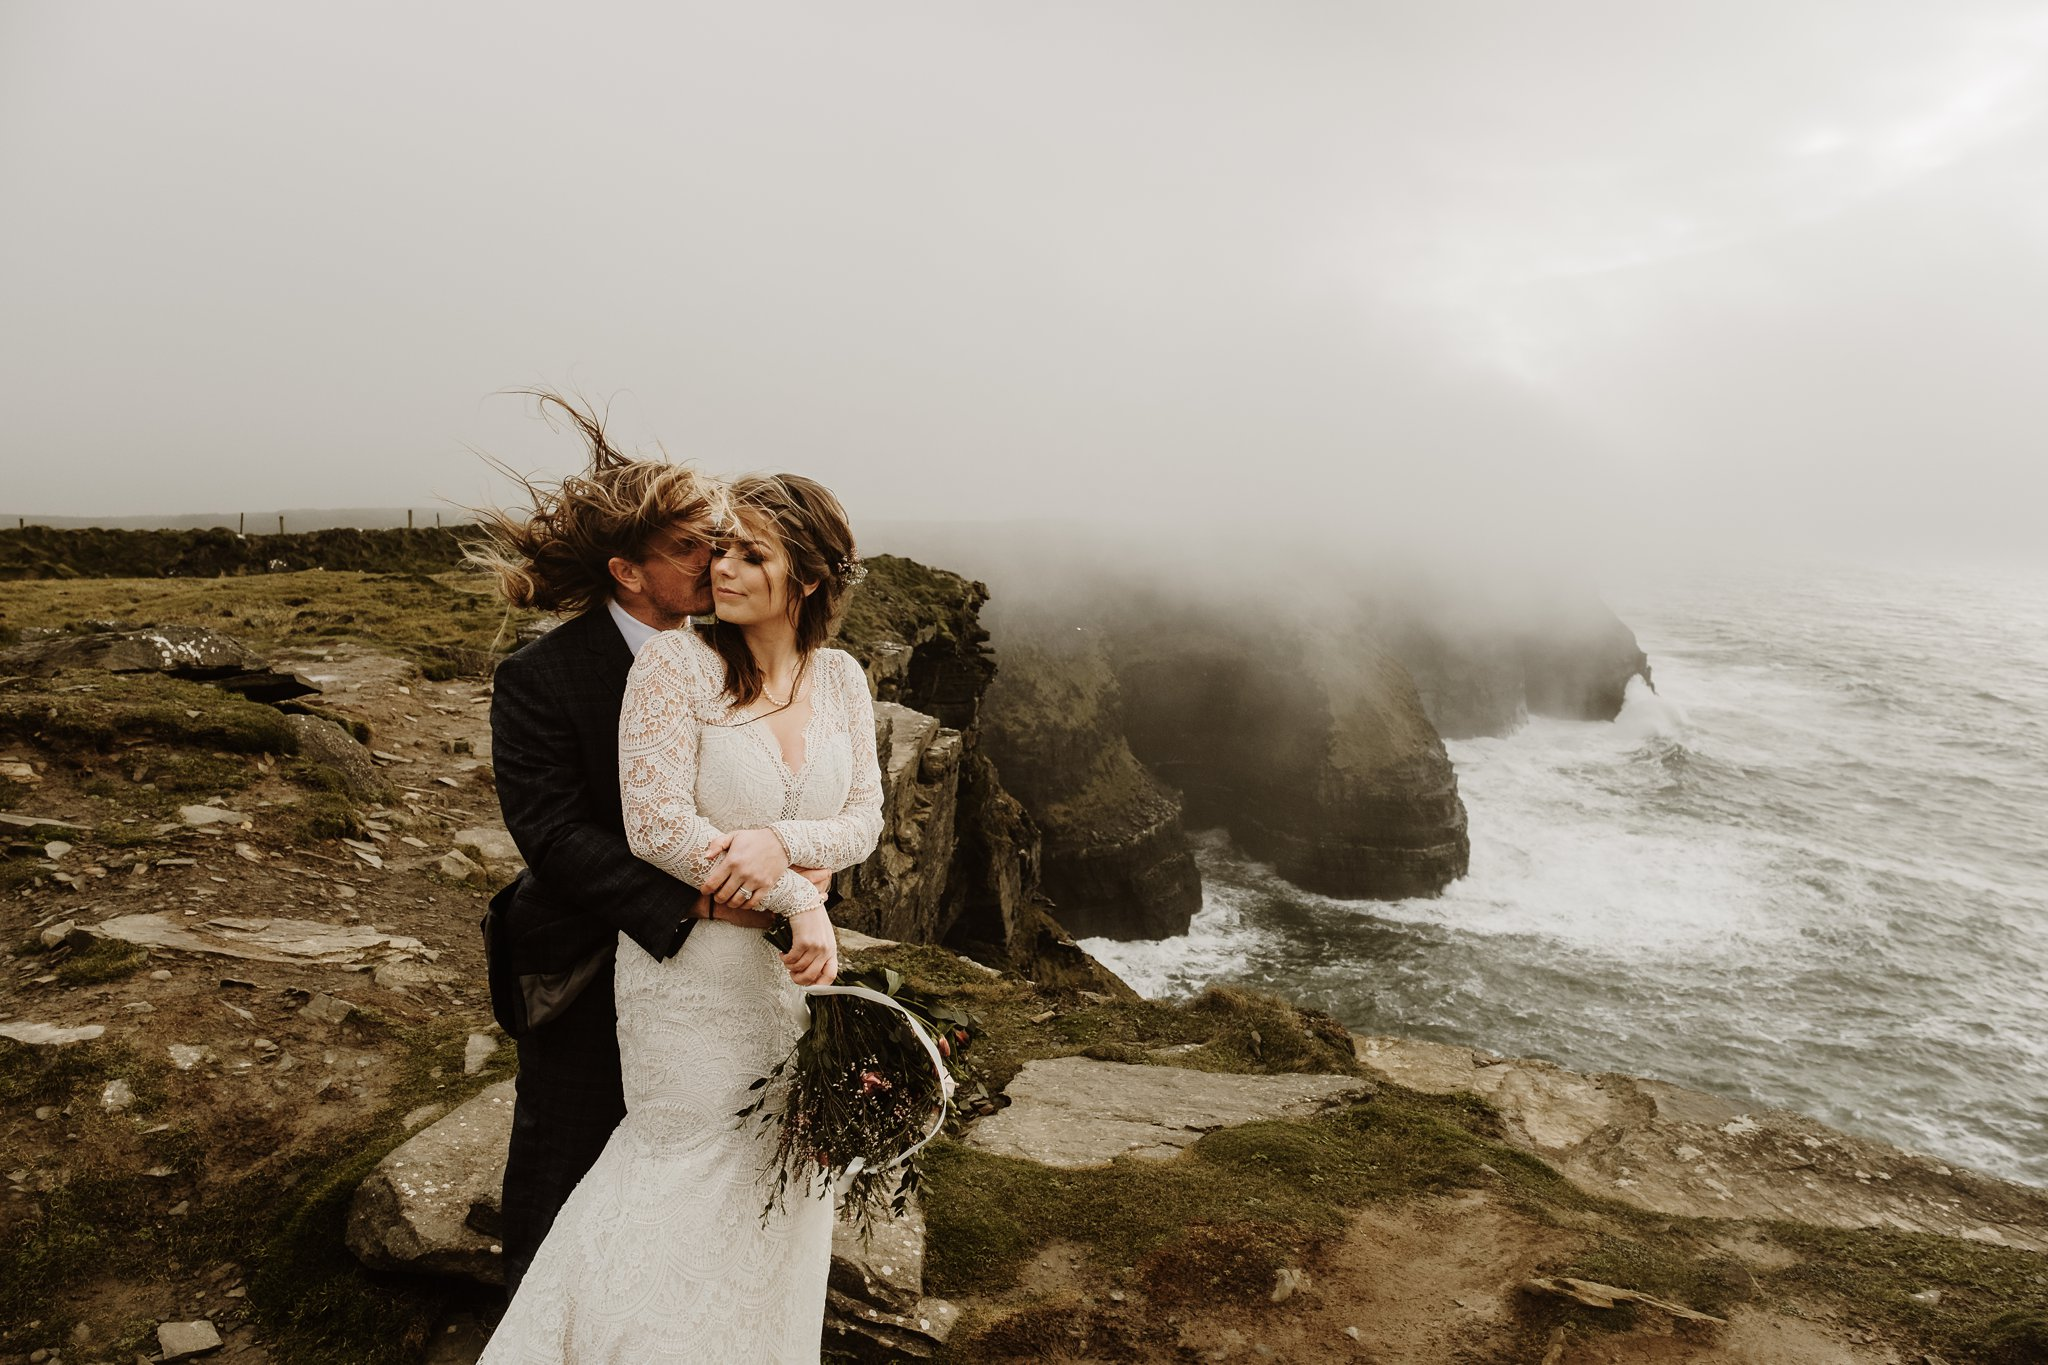 A wild and romantic Cliffs of Moher elopement in Ireland. Photos by Europe Elopement Photographer Wild Connections Photography